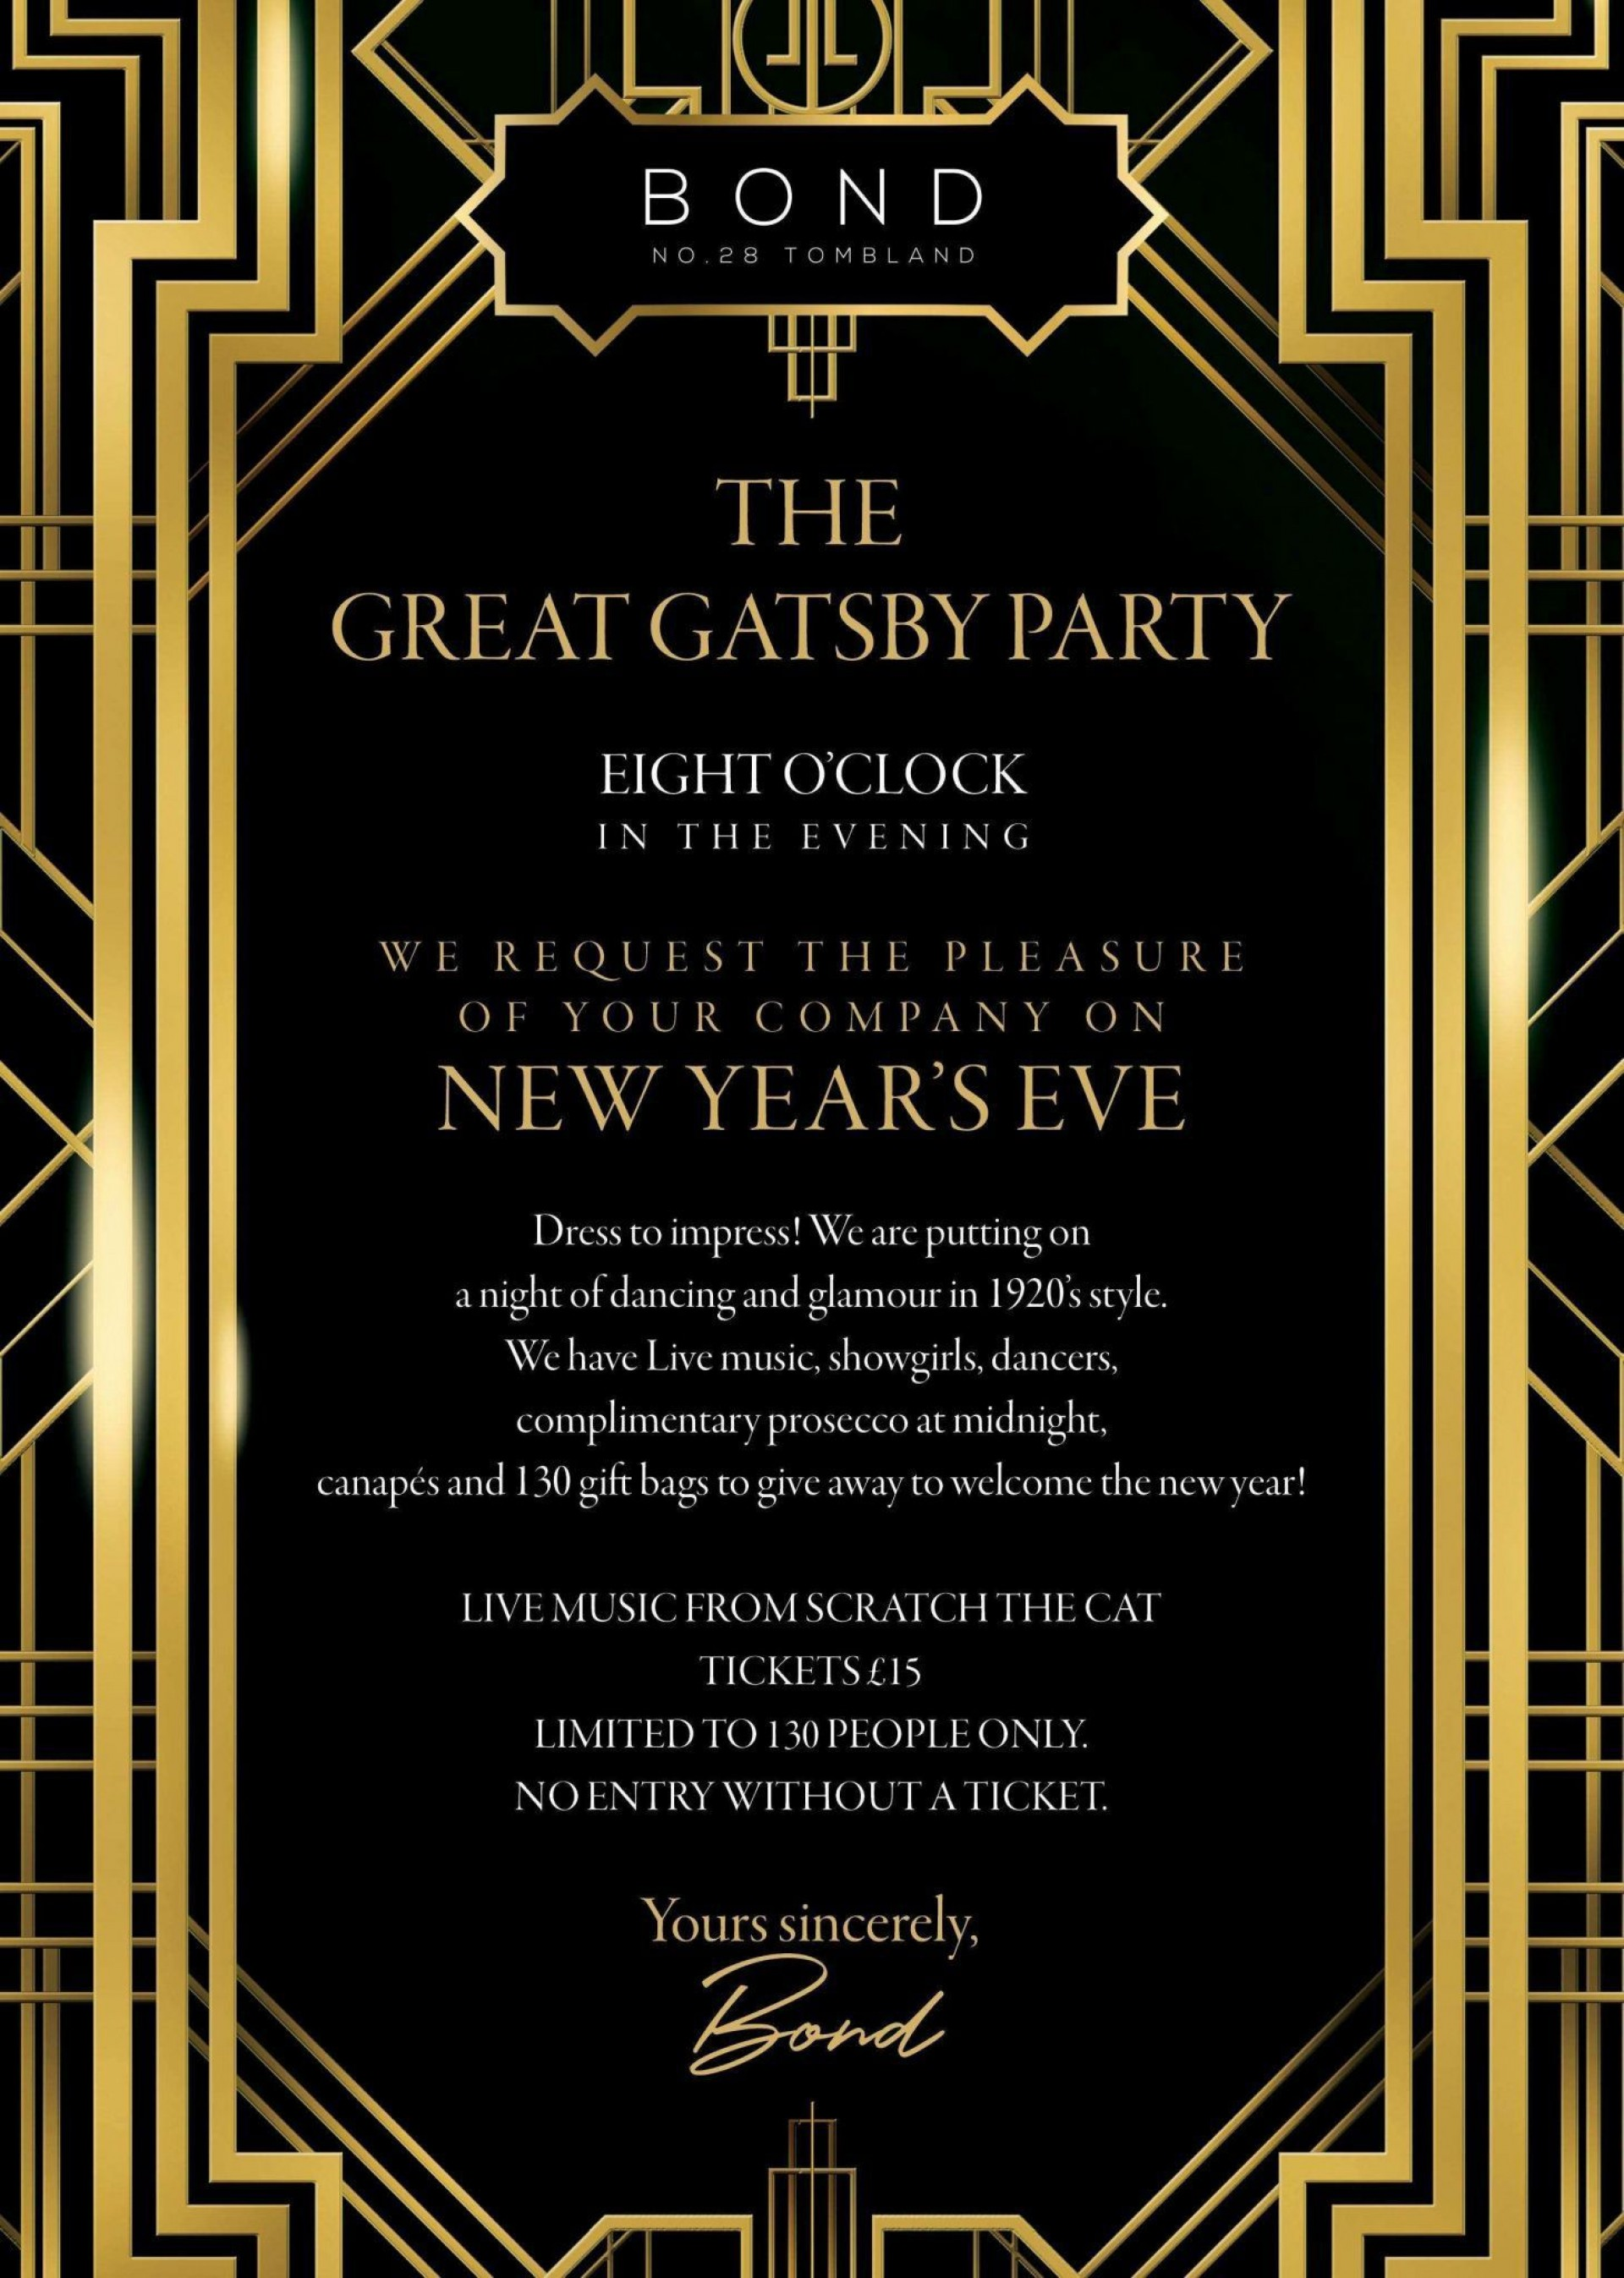 001 Awesome Great Gatsby Invitation Template High Resolution  Templates Free Download Blank1920